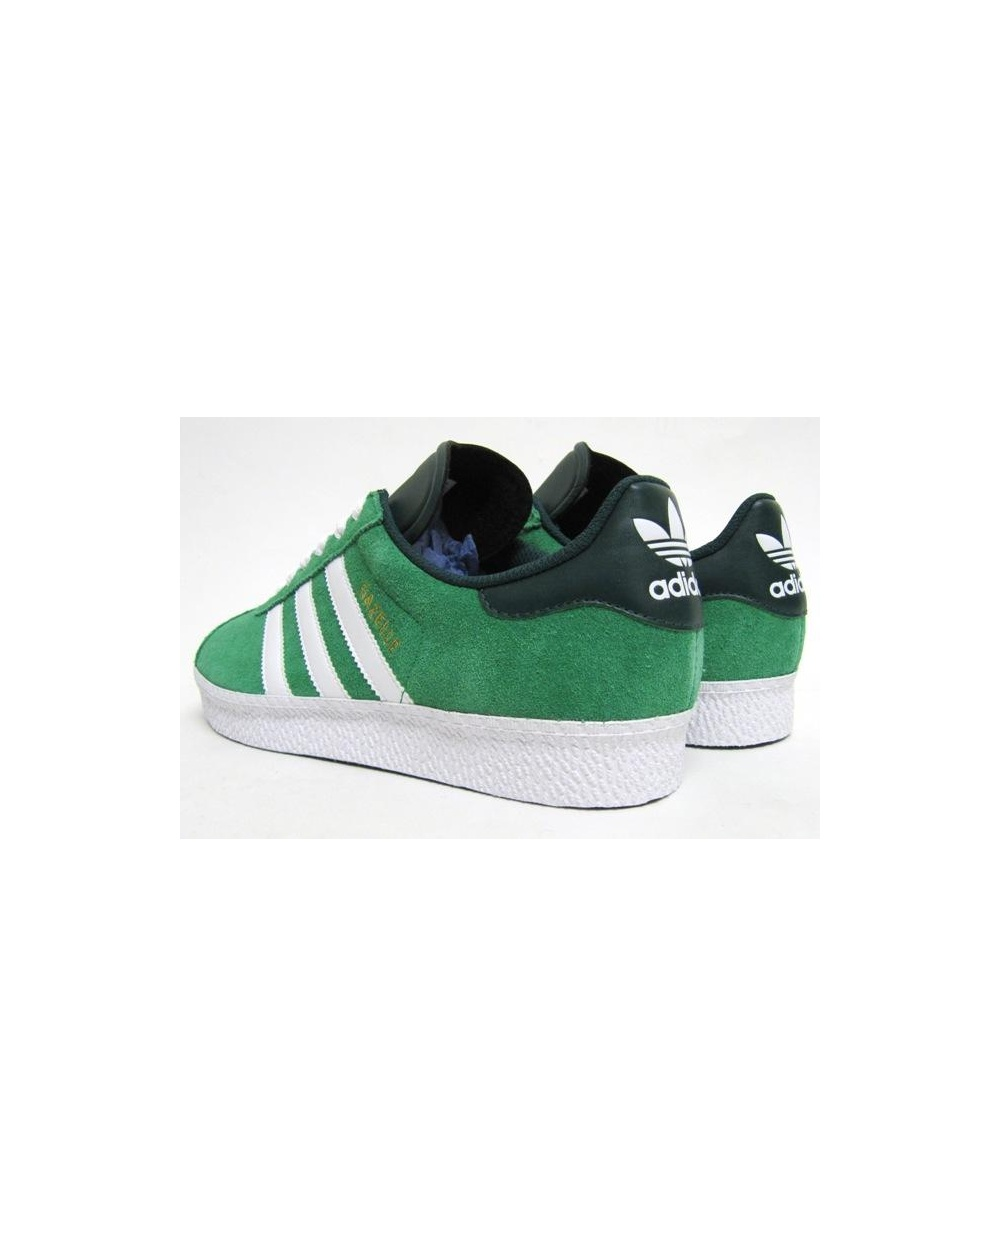 Adidas Gazelle 2 Trainers Fairway Green/White